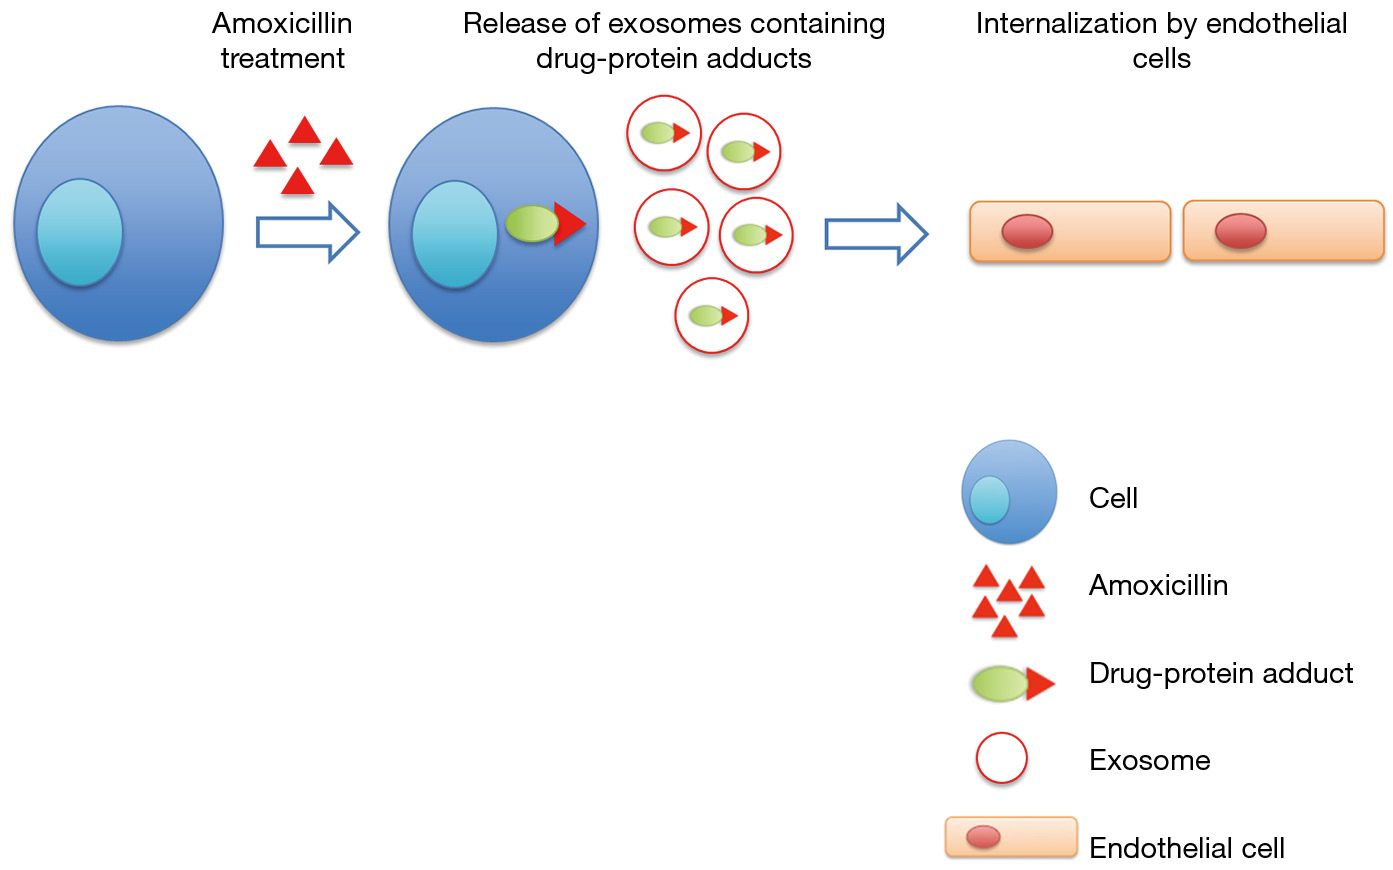 Intracellular proteins that are drug targets